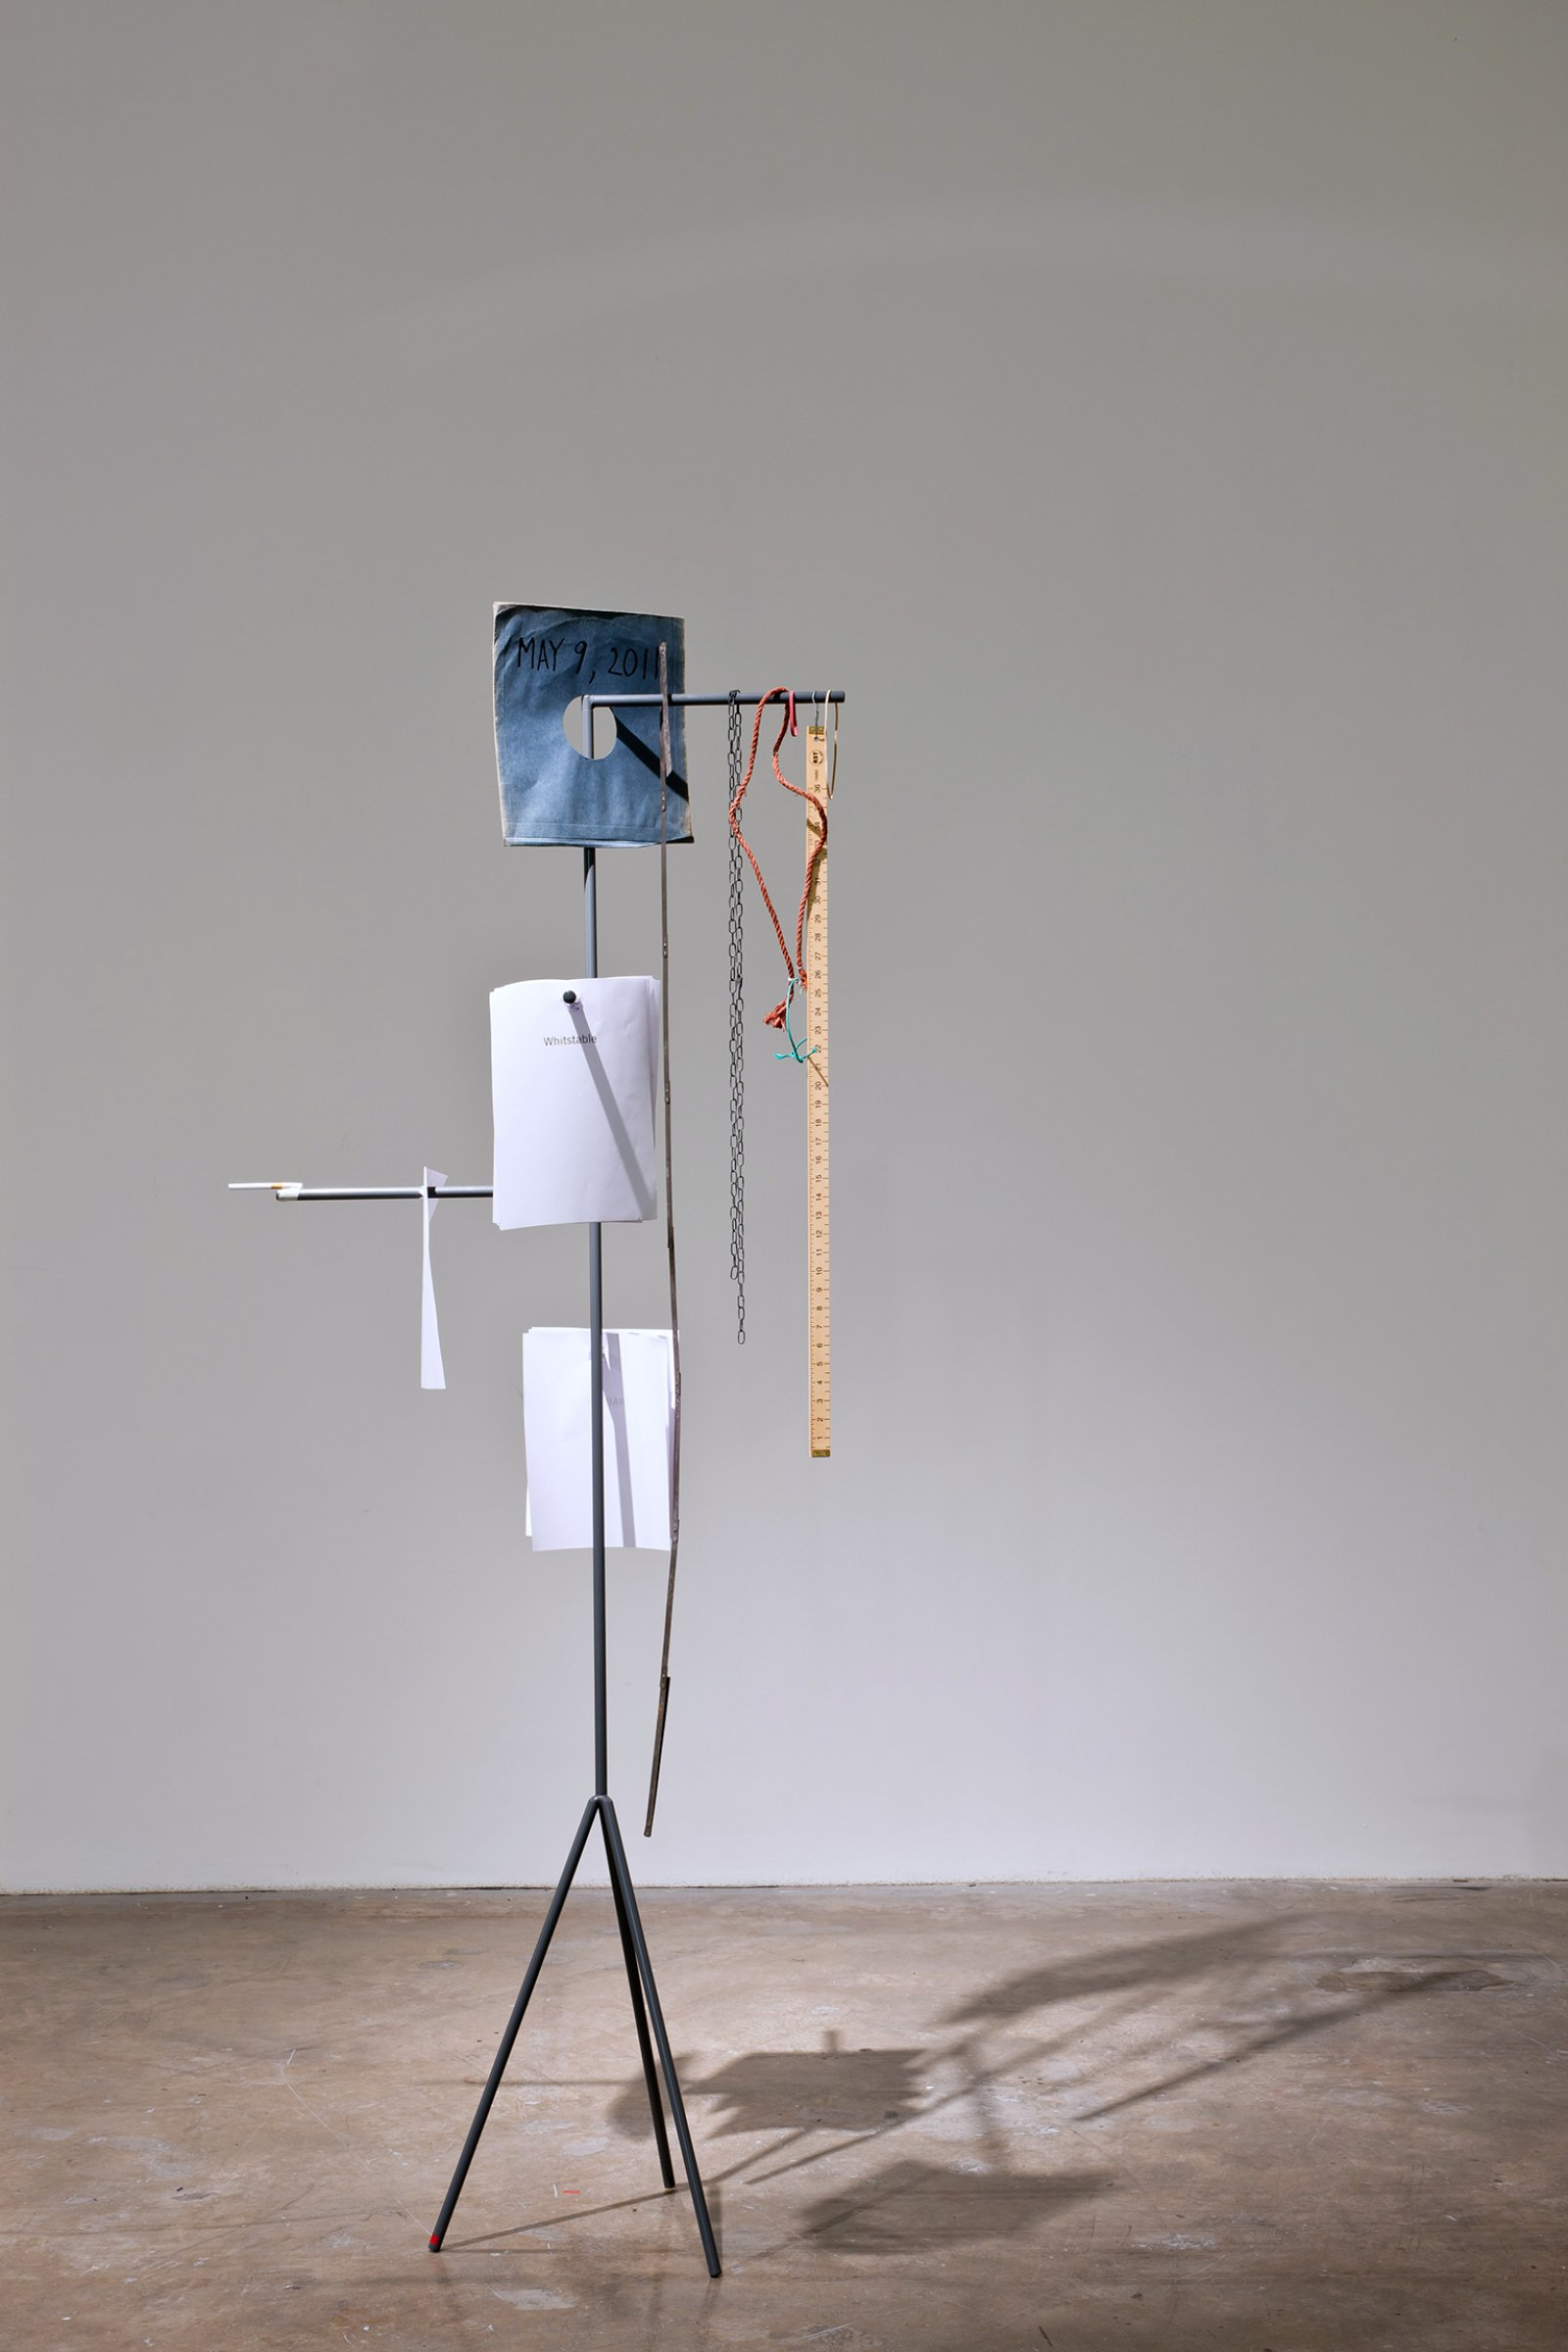 Geoffrey Farmer and Jeremy Millar,Mondegreen, 2011, variable components and dimensions. Installation view,Mondegreen, Projects Art Centre, Dublin, 2011